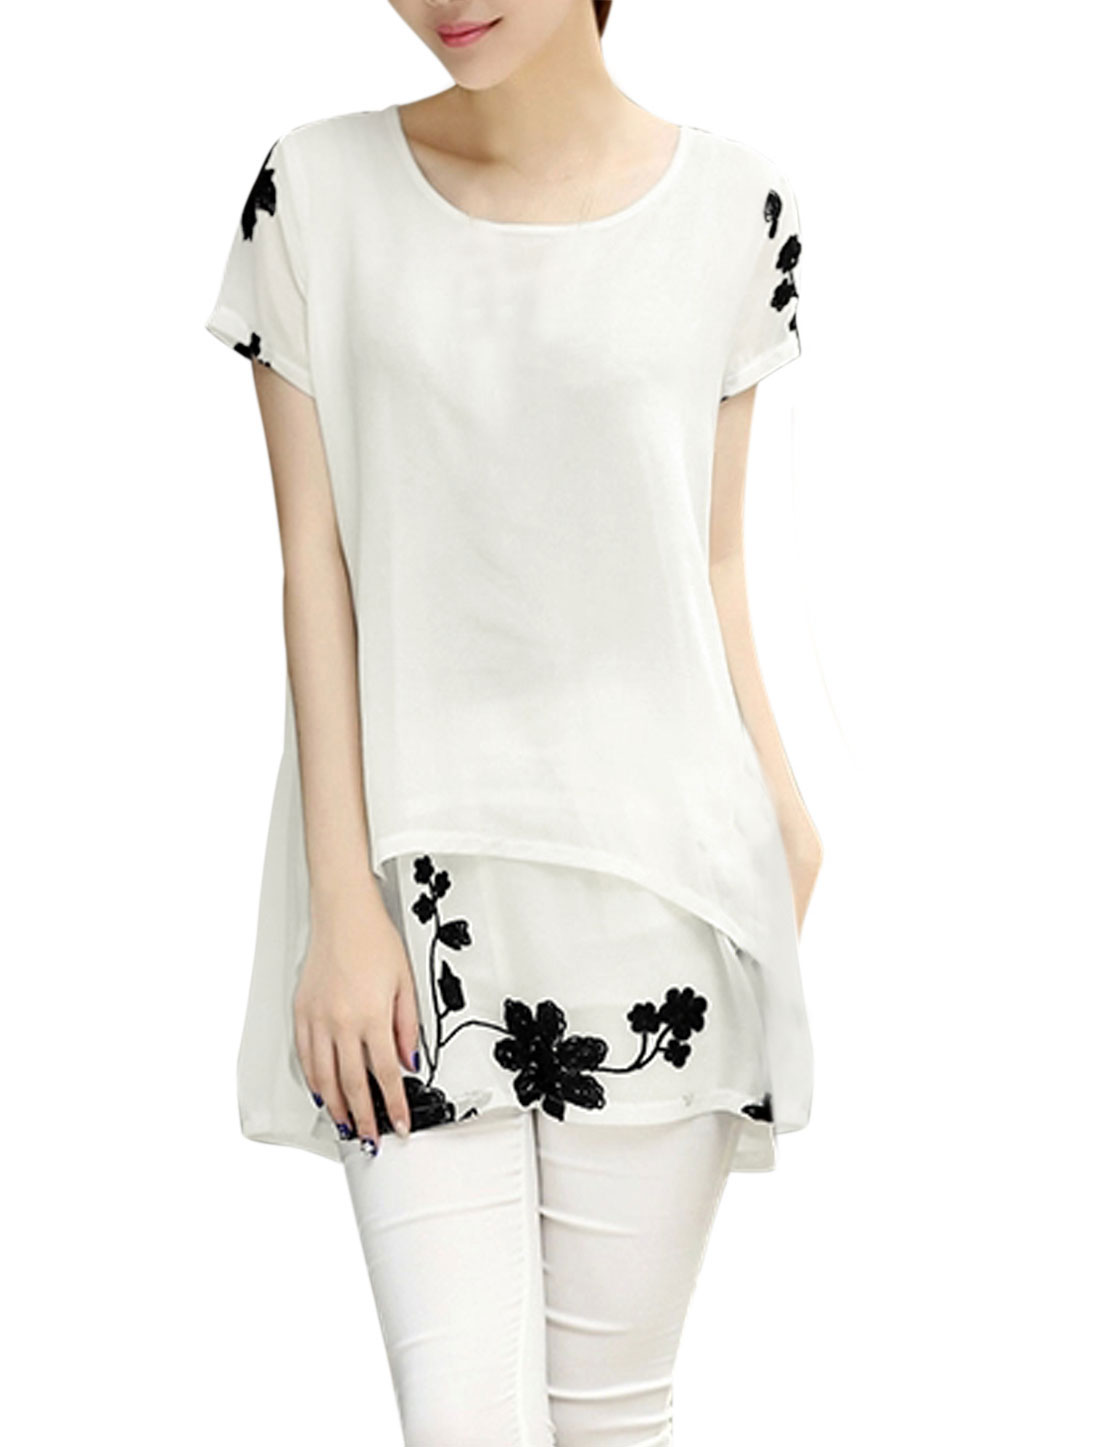 Woman Floral Embroidery Scoop Neck Chiffon Layered Tunic Top White XS